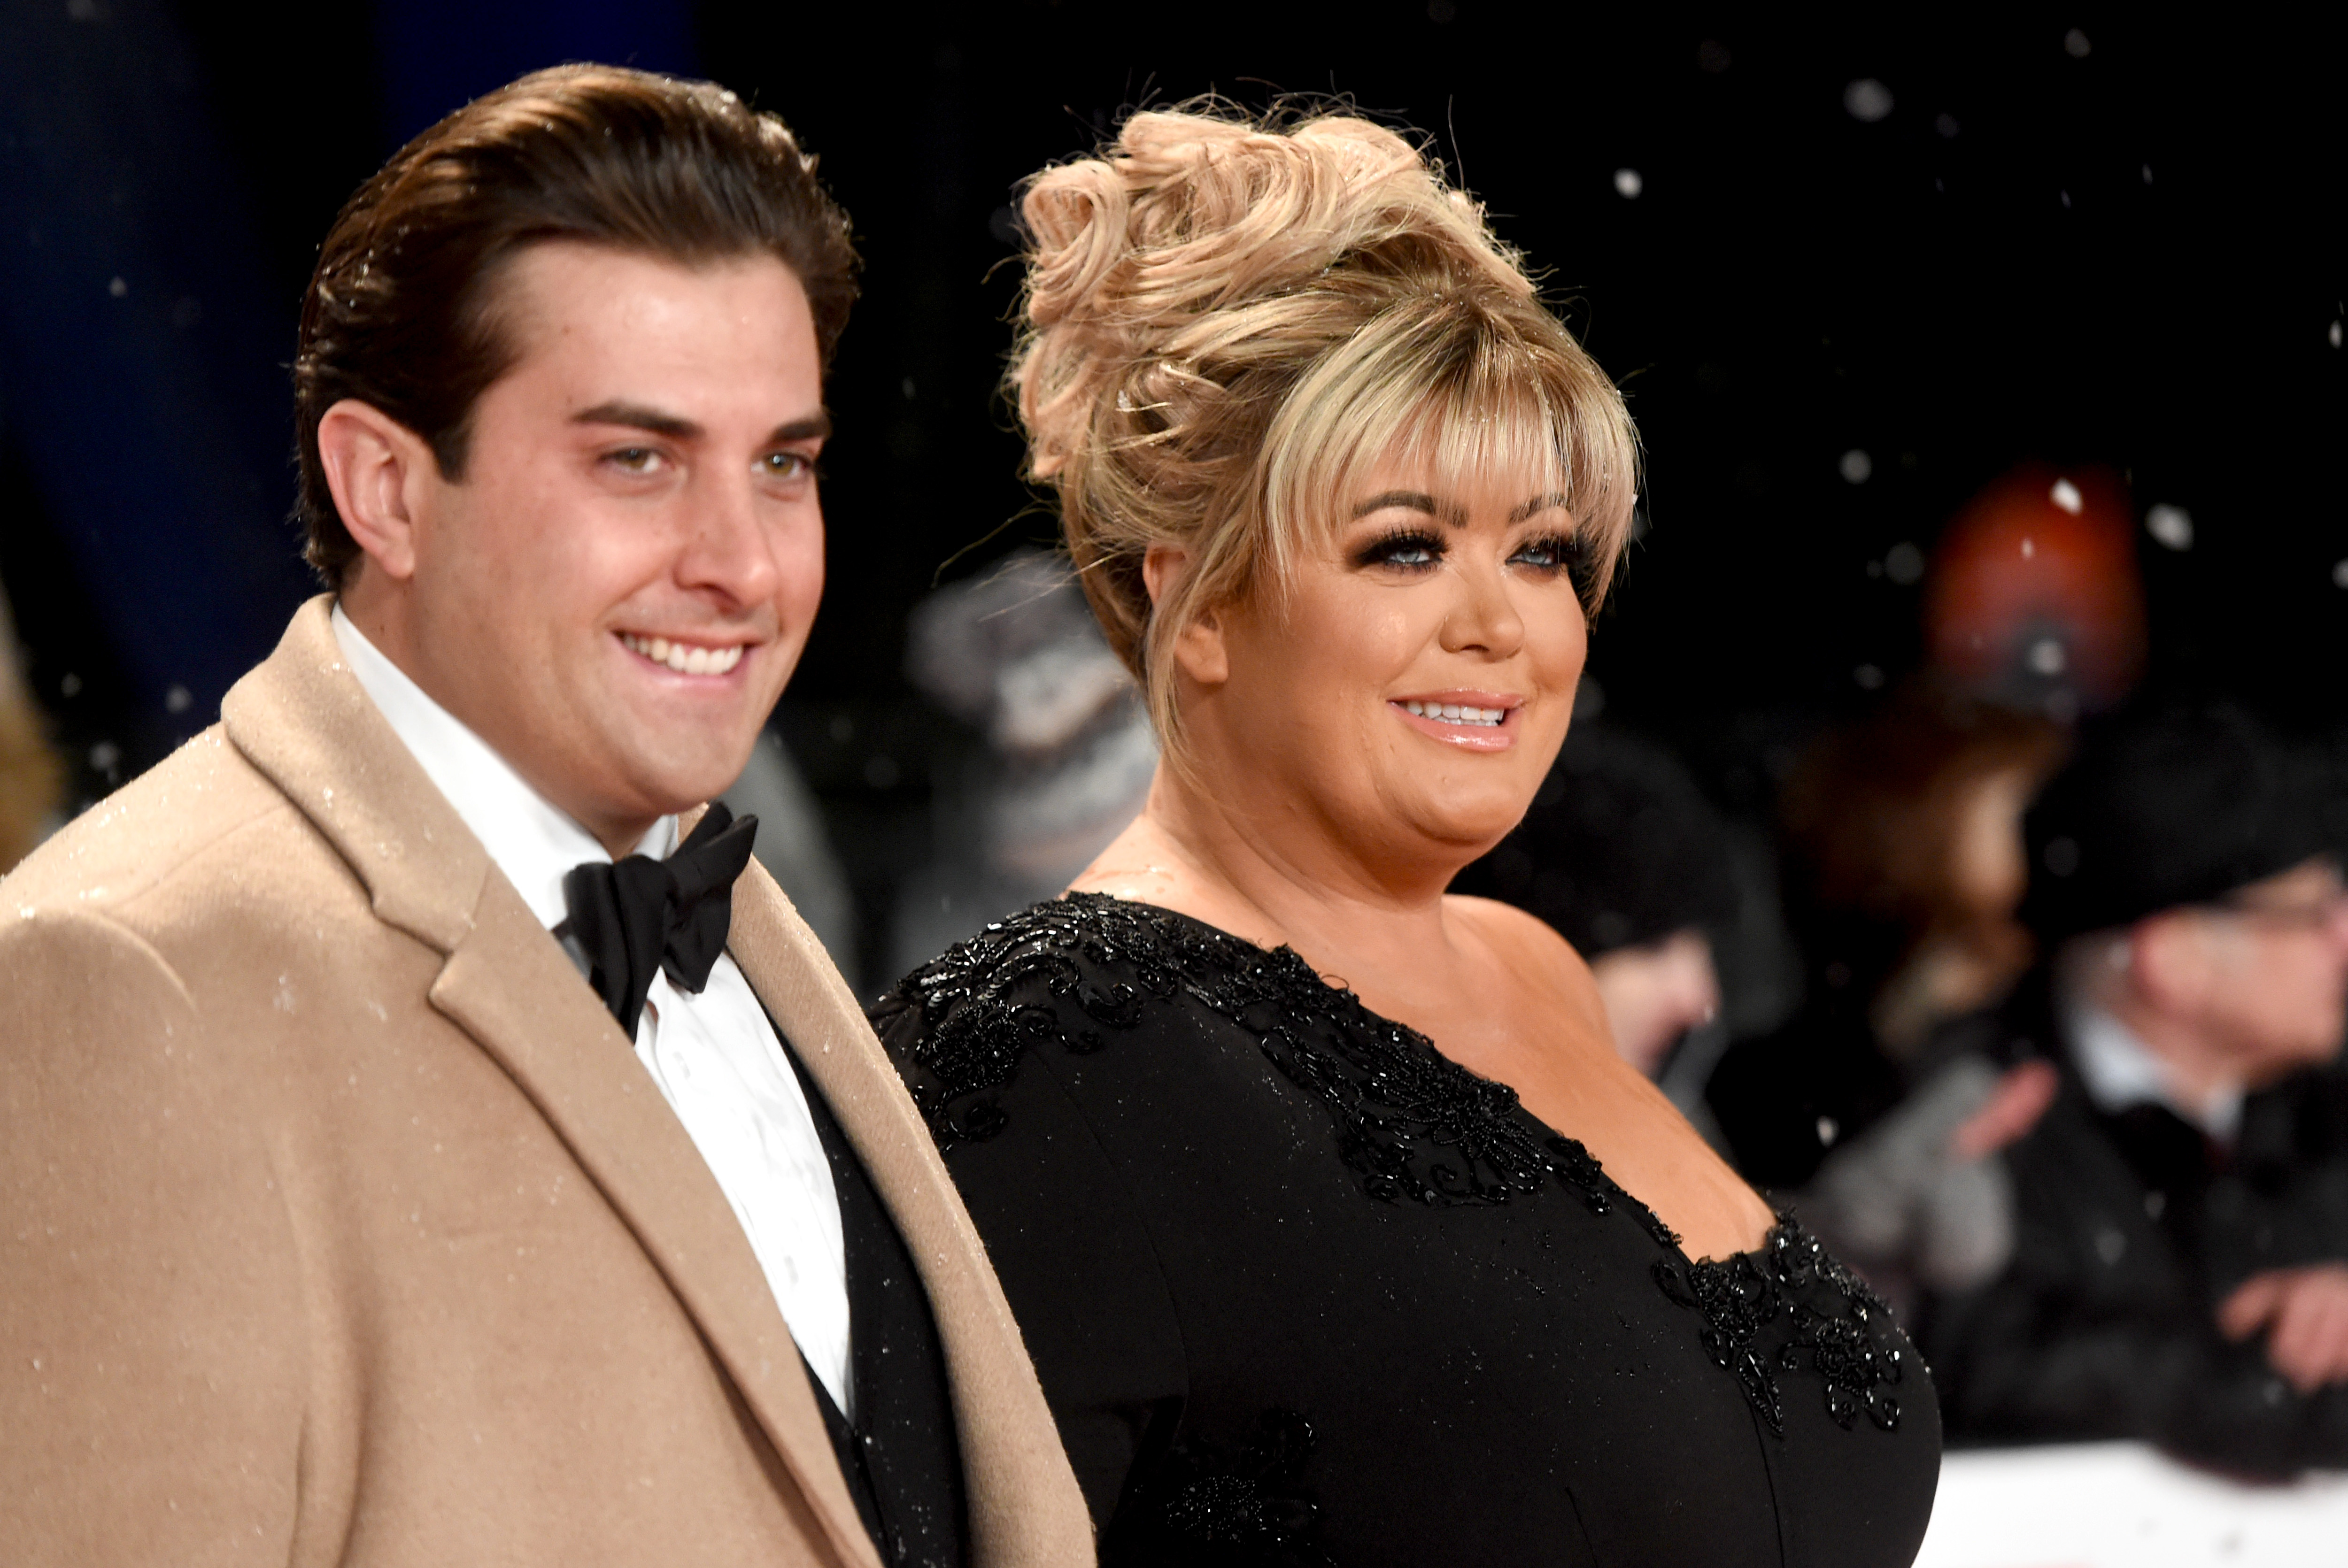 Gemma Collins and James Argent 'back together' and we've officially got whiplash from all the back and forth